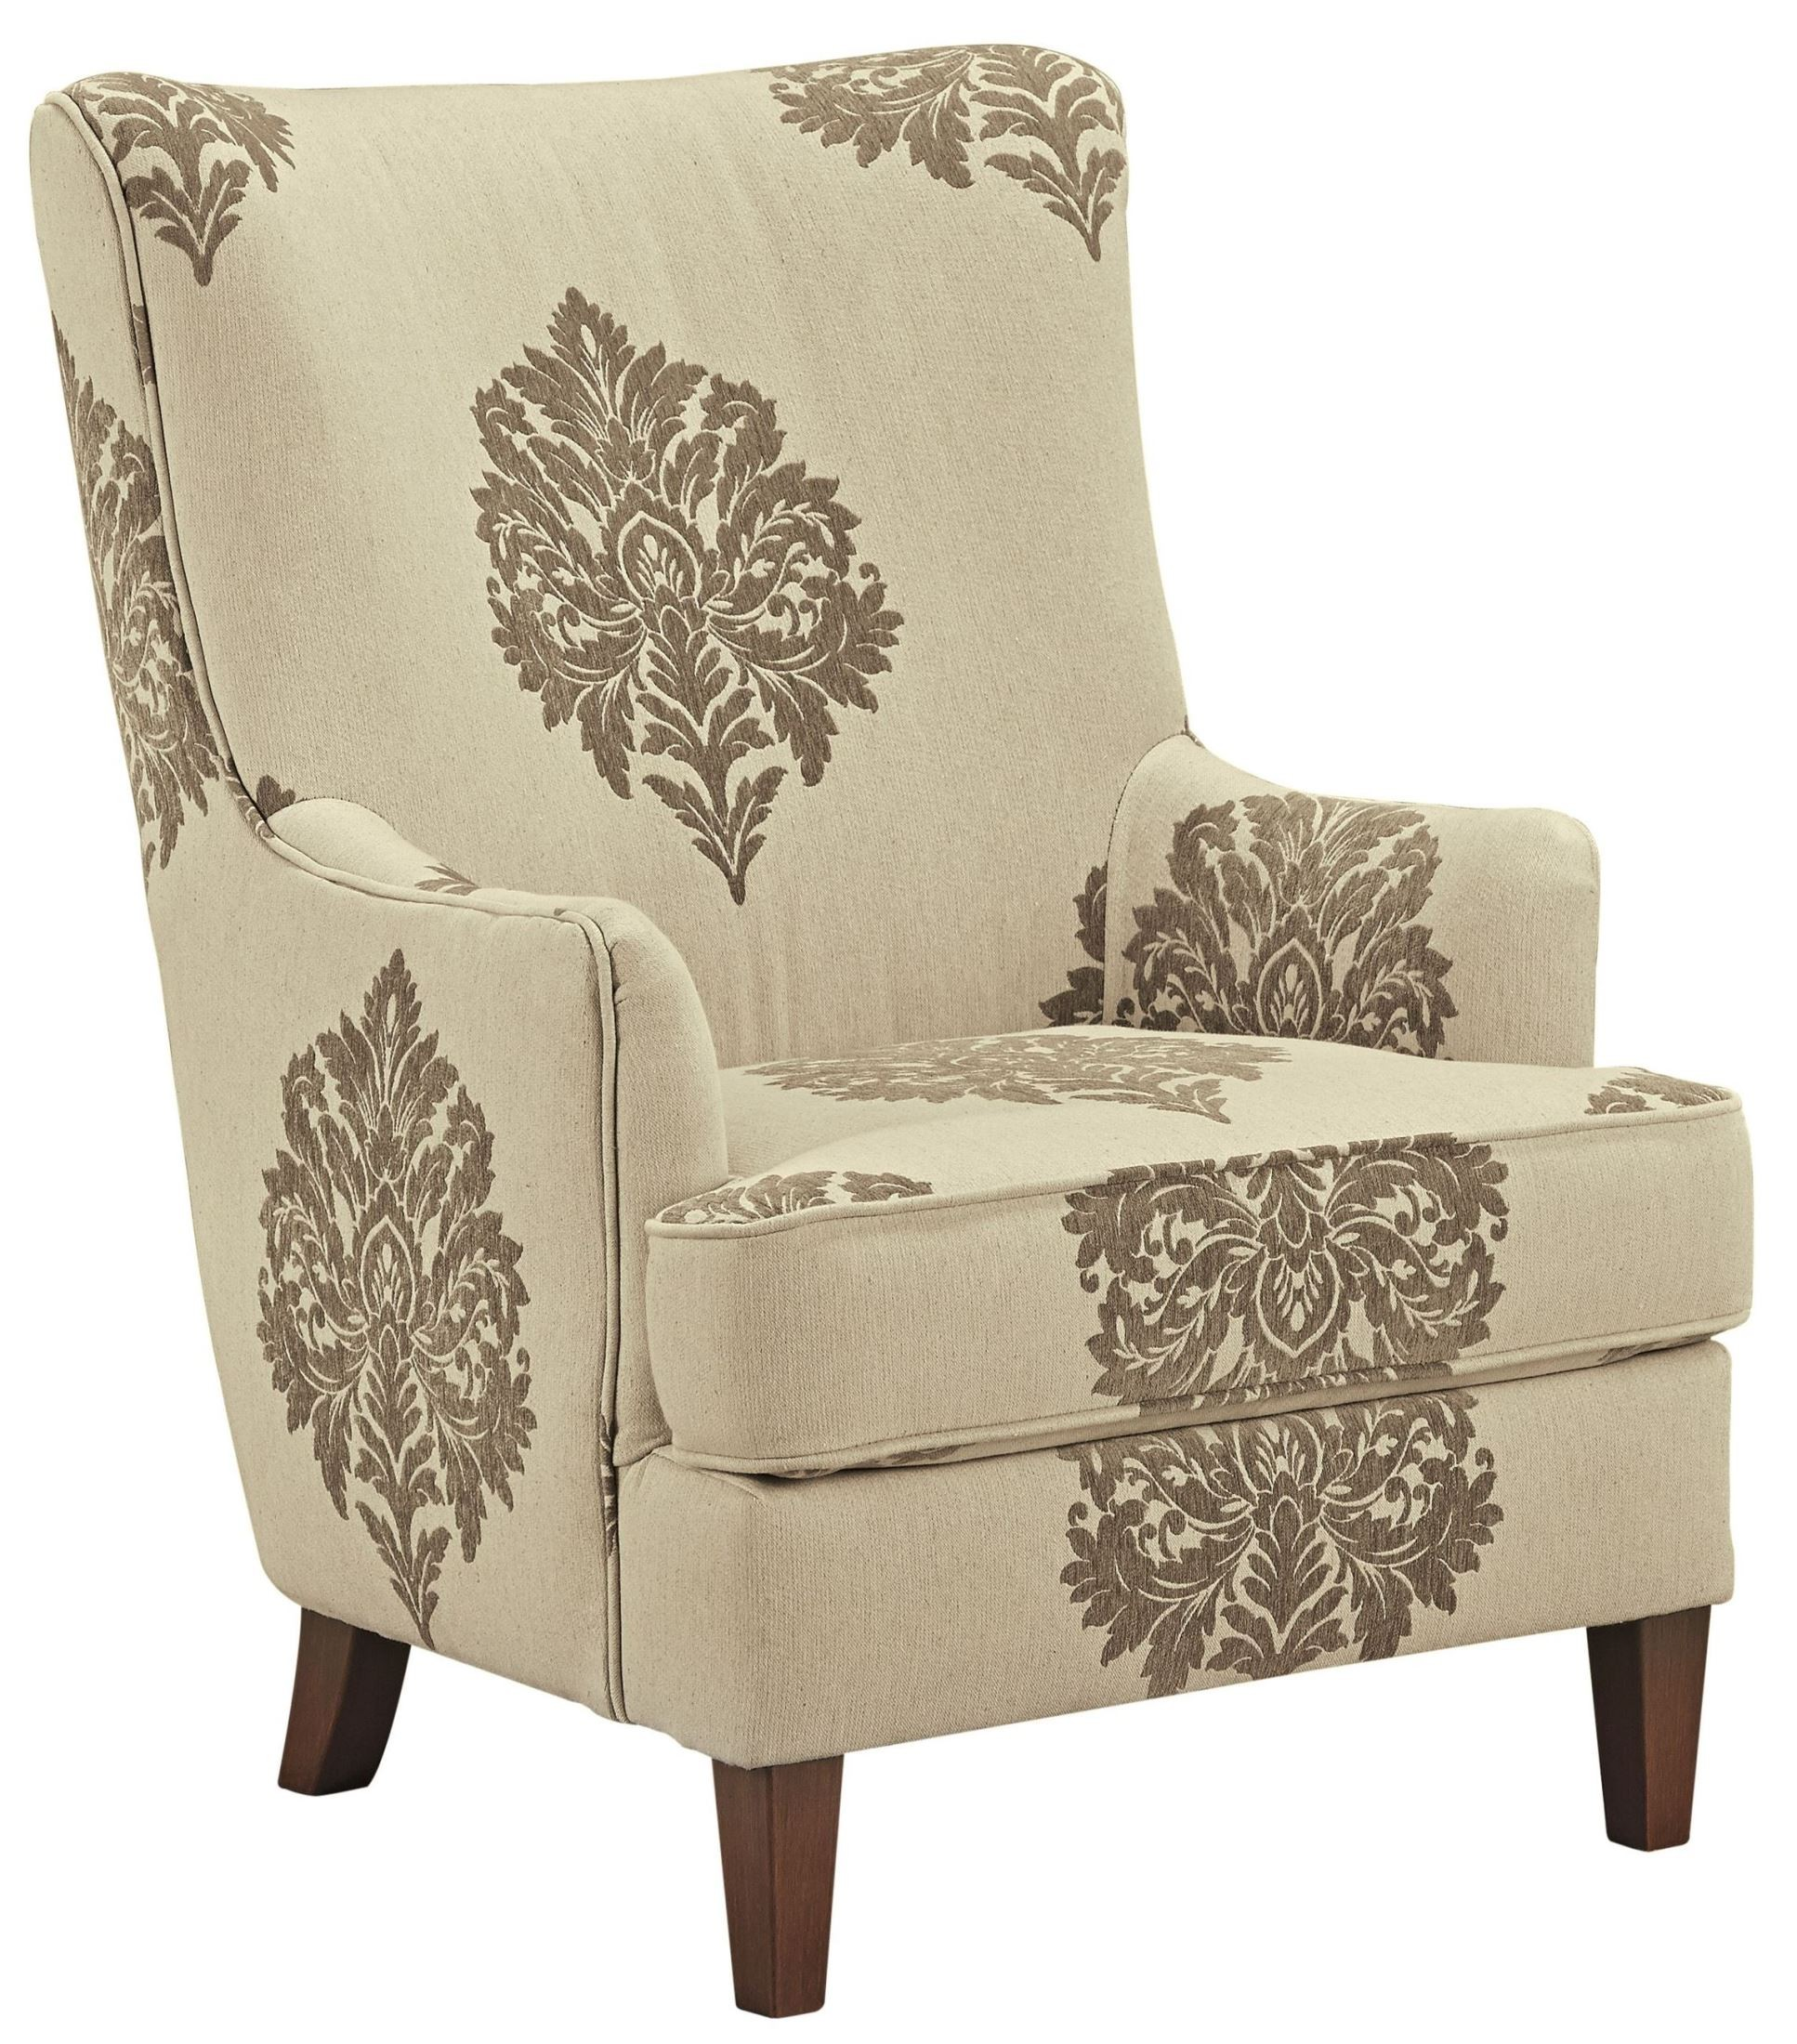 Berwyn View Quartz Accent Chair from Ashley 898XX21